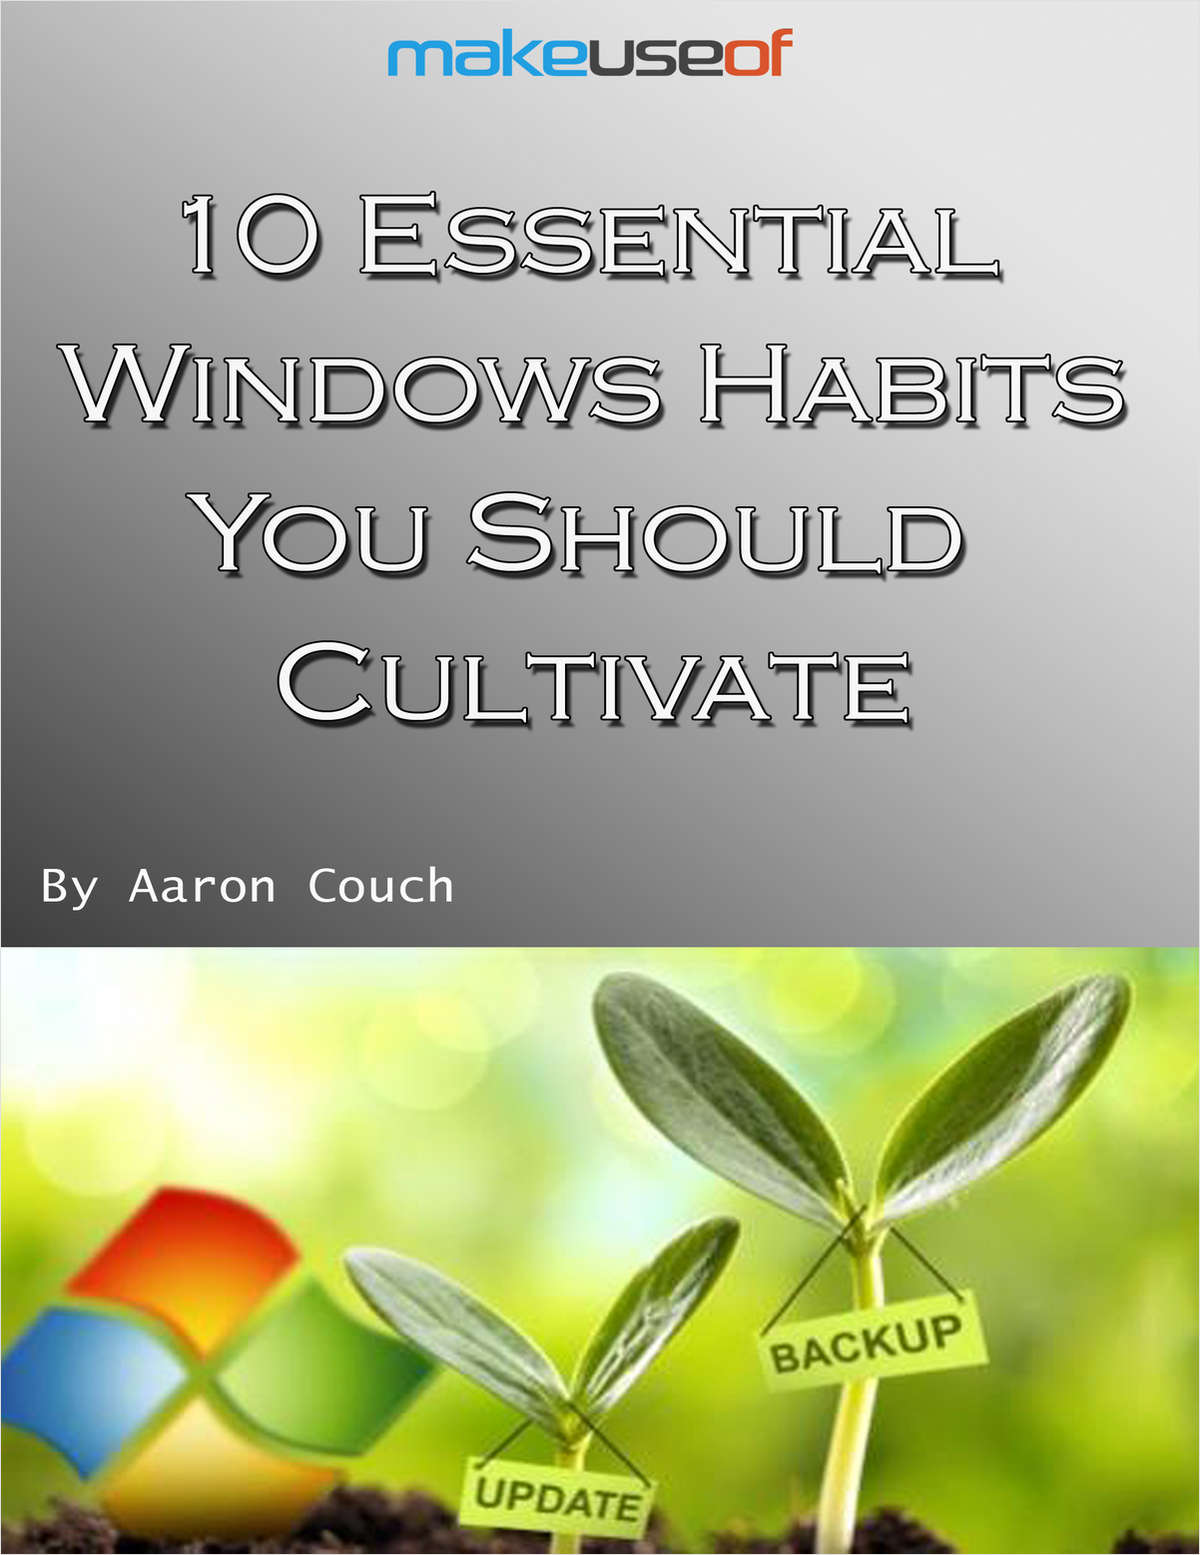 10 Essential Windows Habits You Should Cultivate